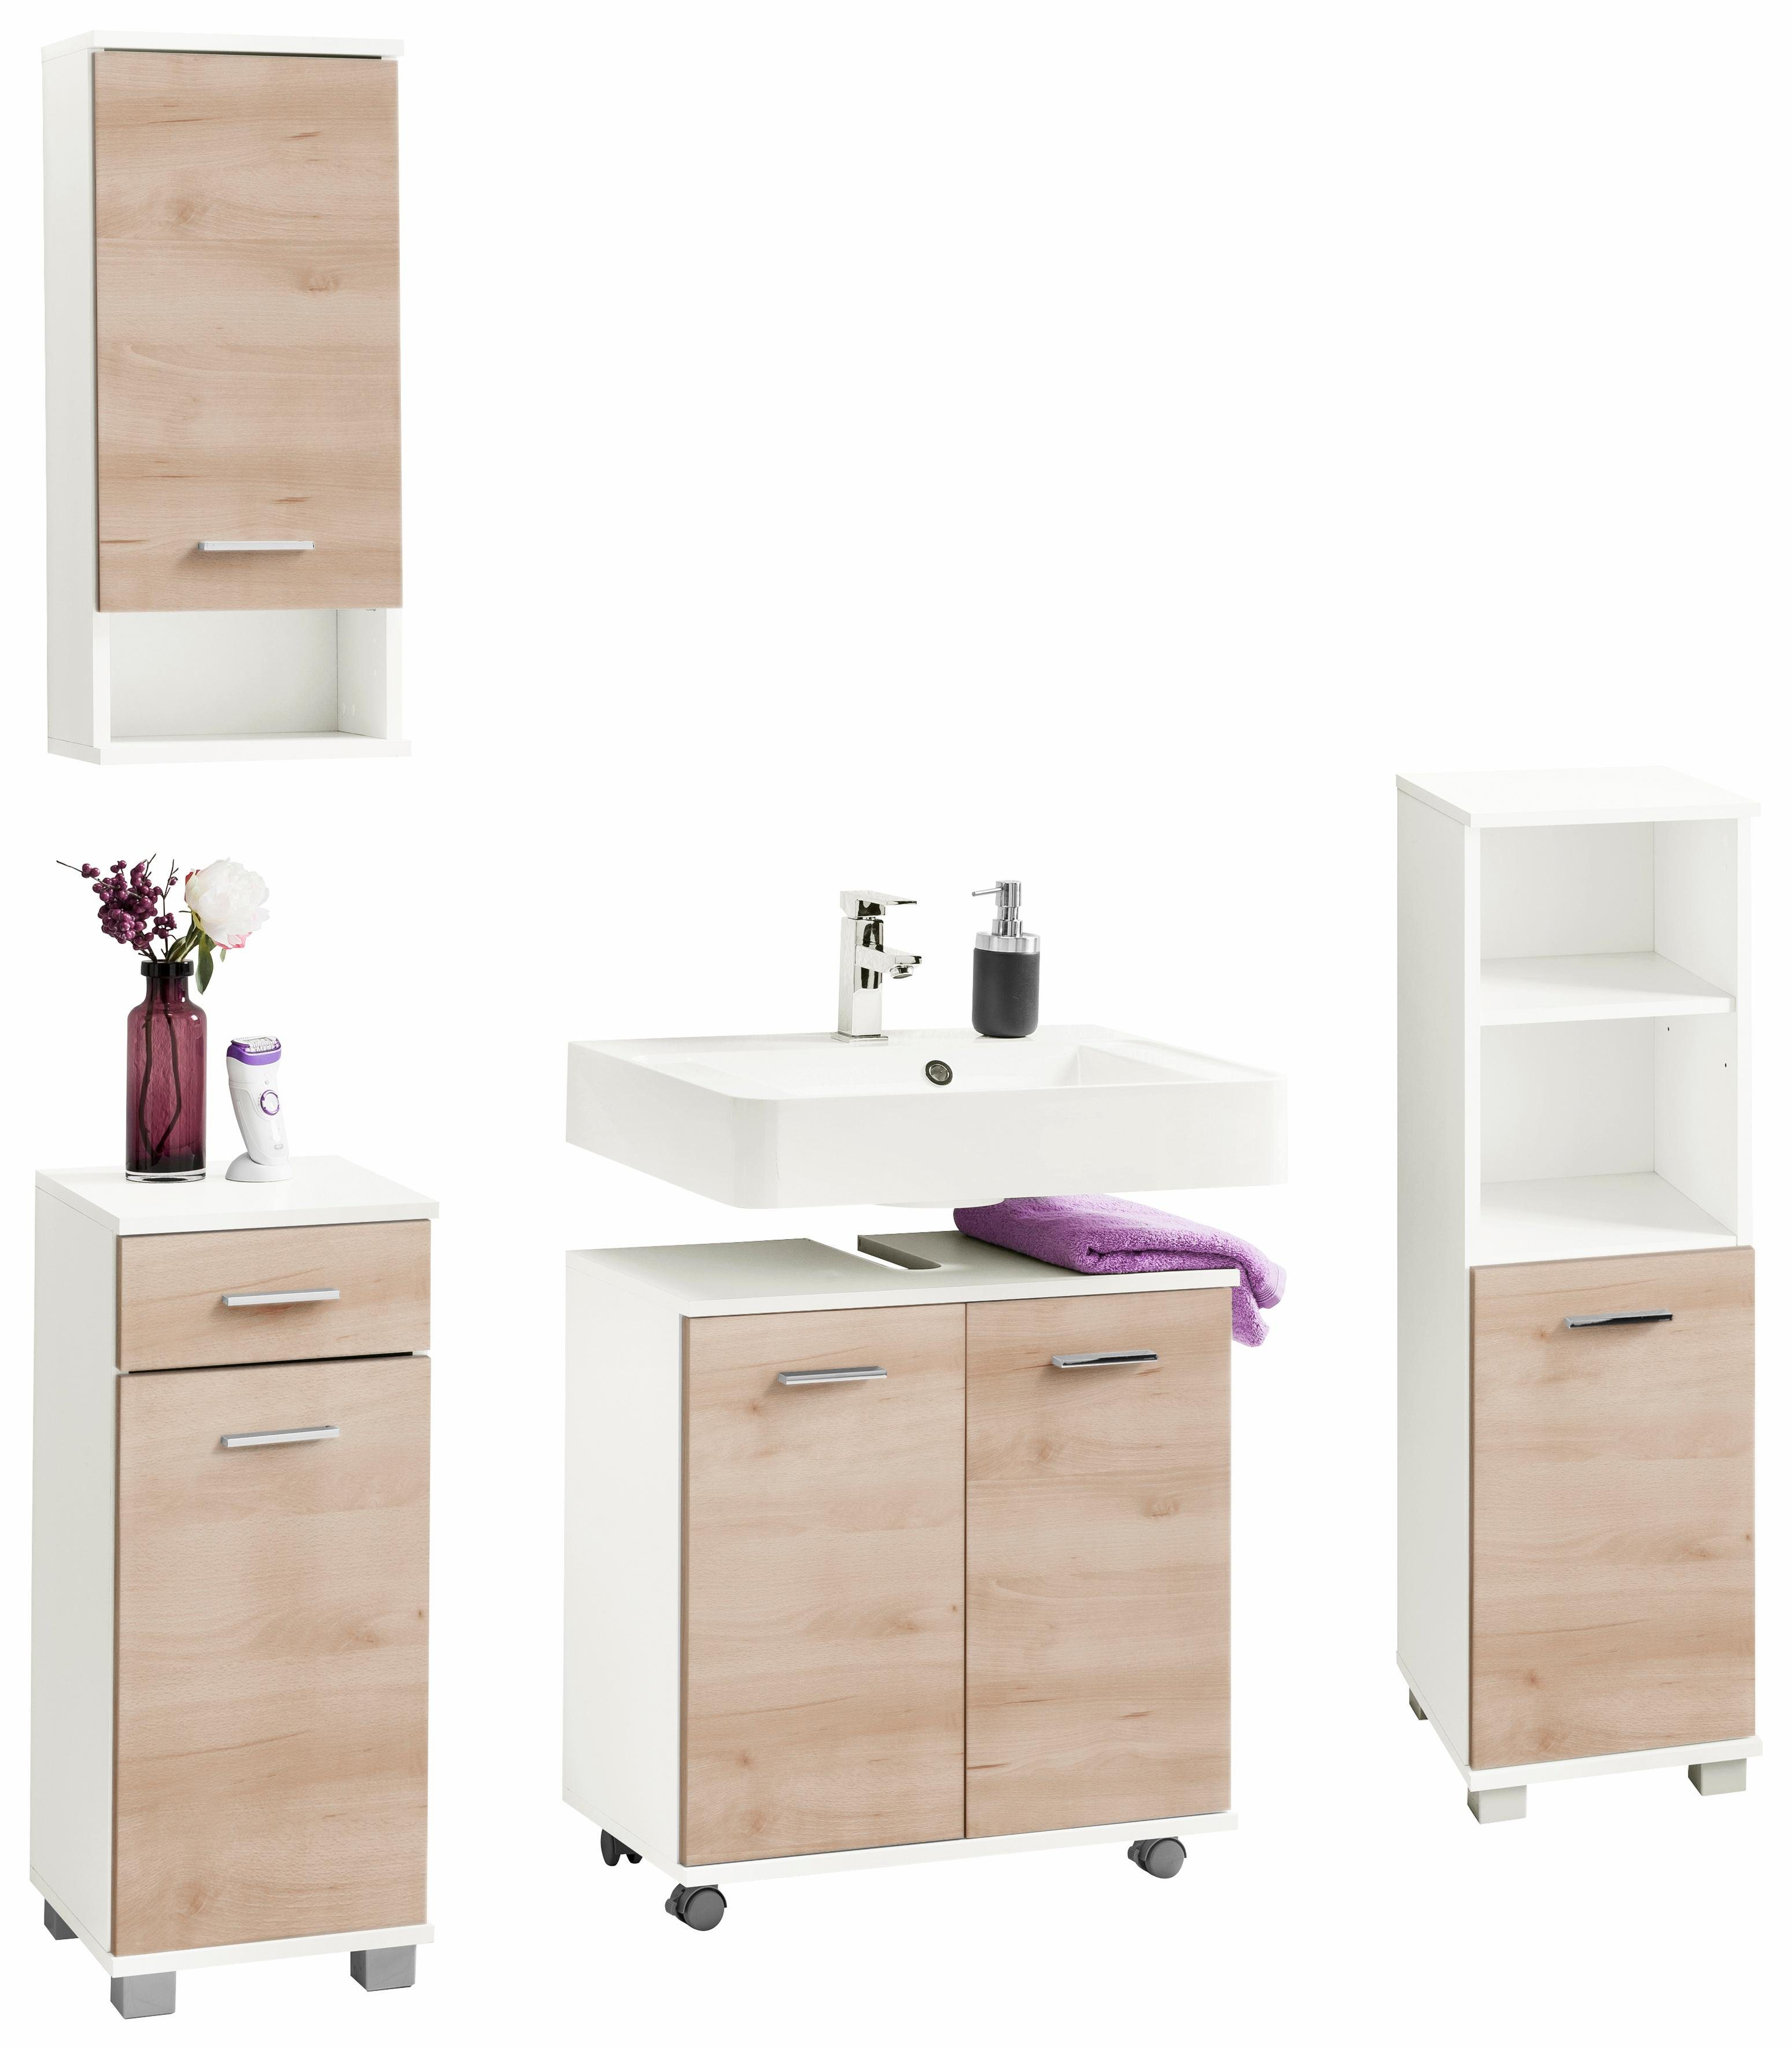 48 sparen badm bel set vigo ab 129 99 cherry m bel otto. Black Bedroom Furniture Sets. Home Design Ideas